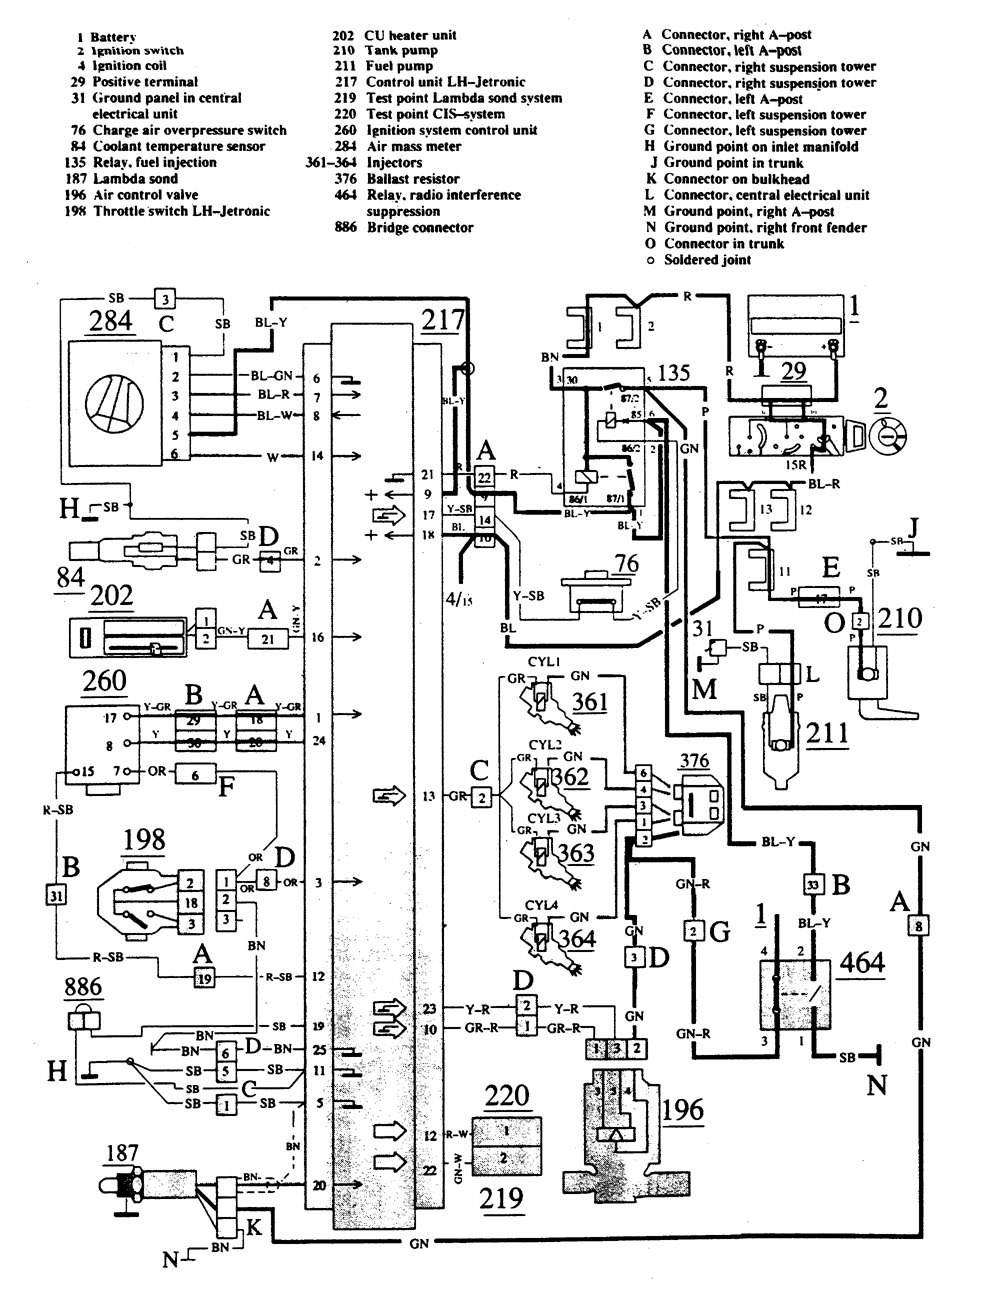 Diagram Volvo 740 Wiring Diagram 1989 Full Version Hd Quality Diagram 1989 Uwiring21 Lasagradellacastagna It